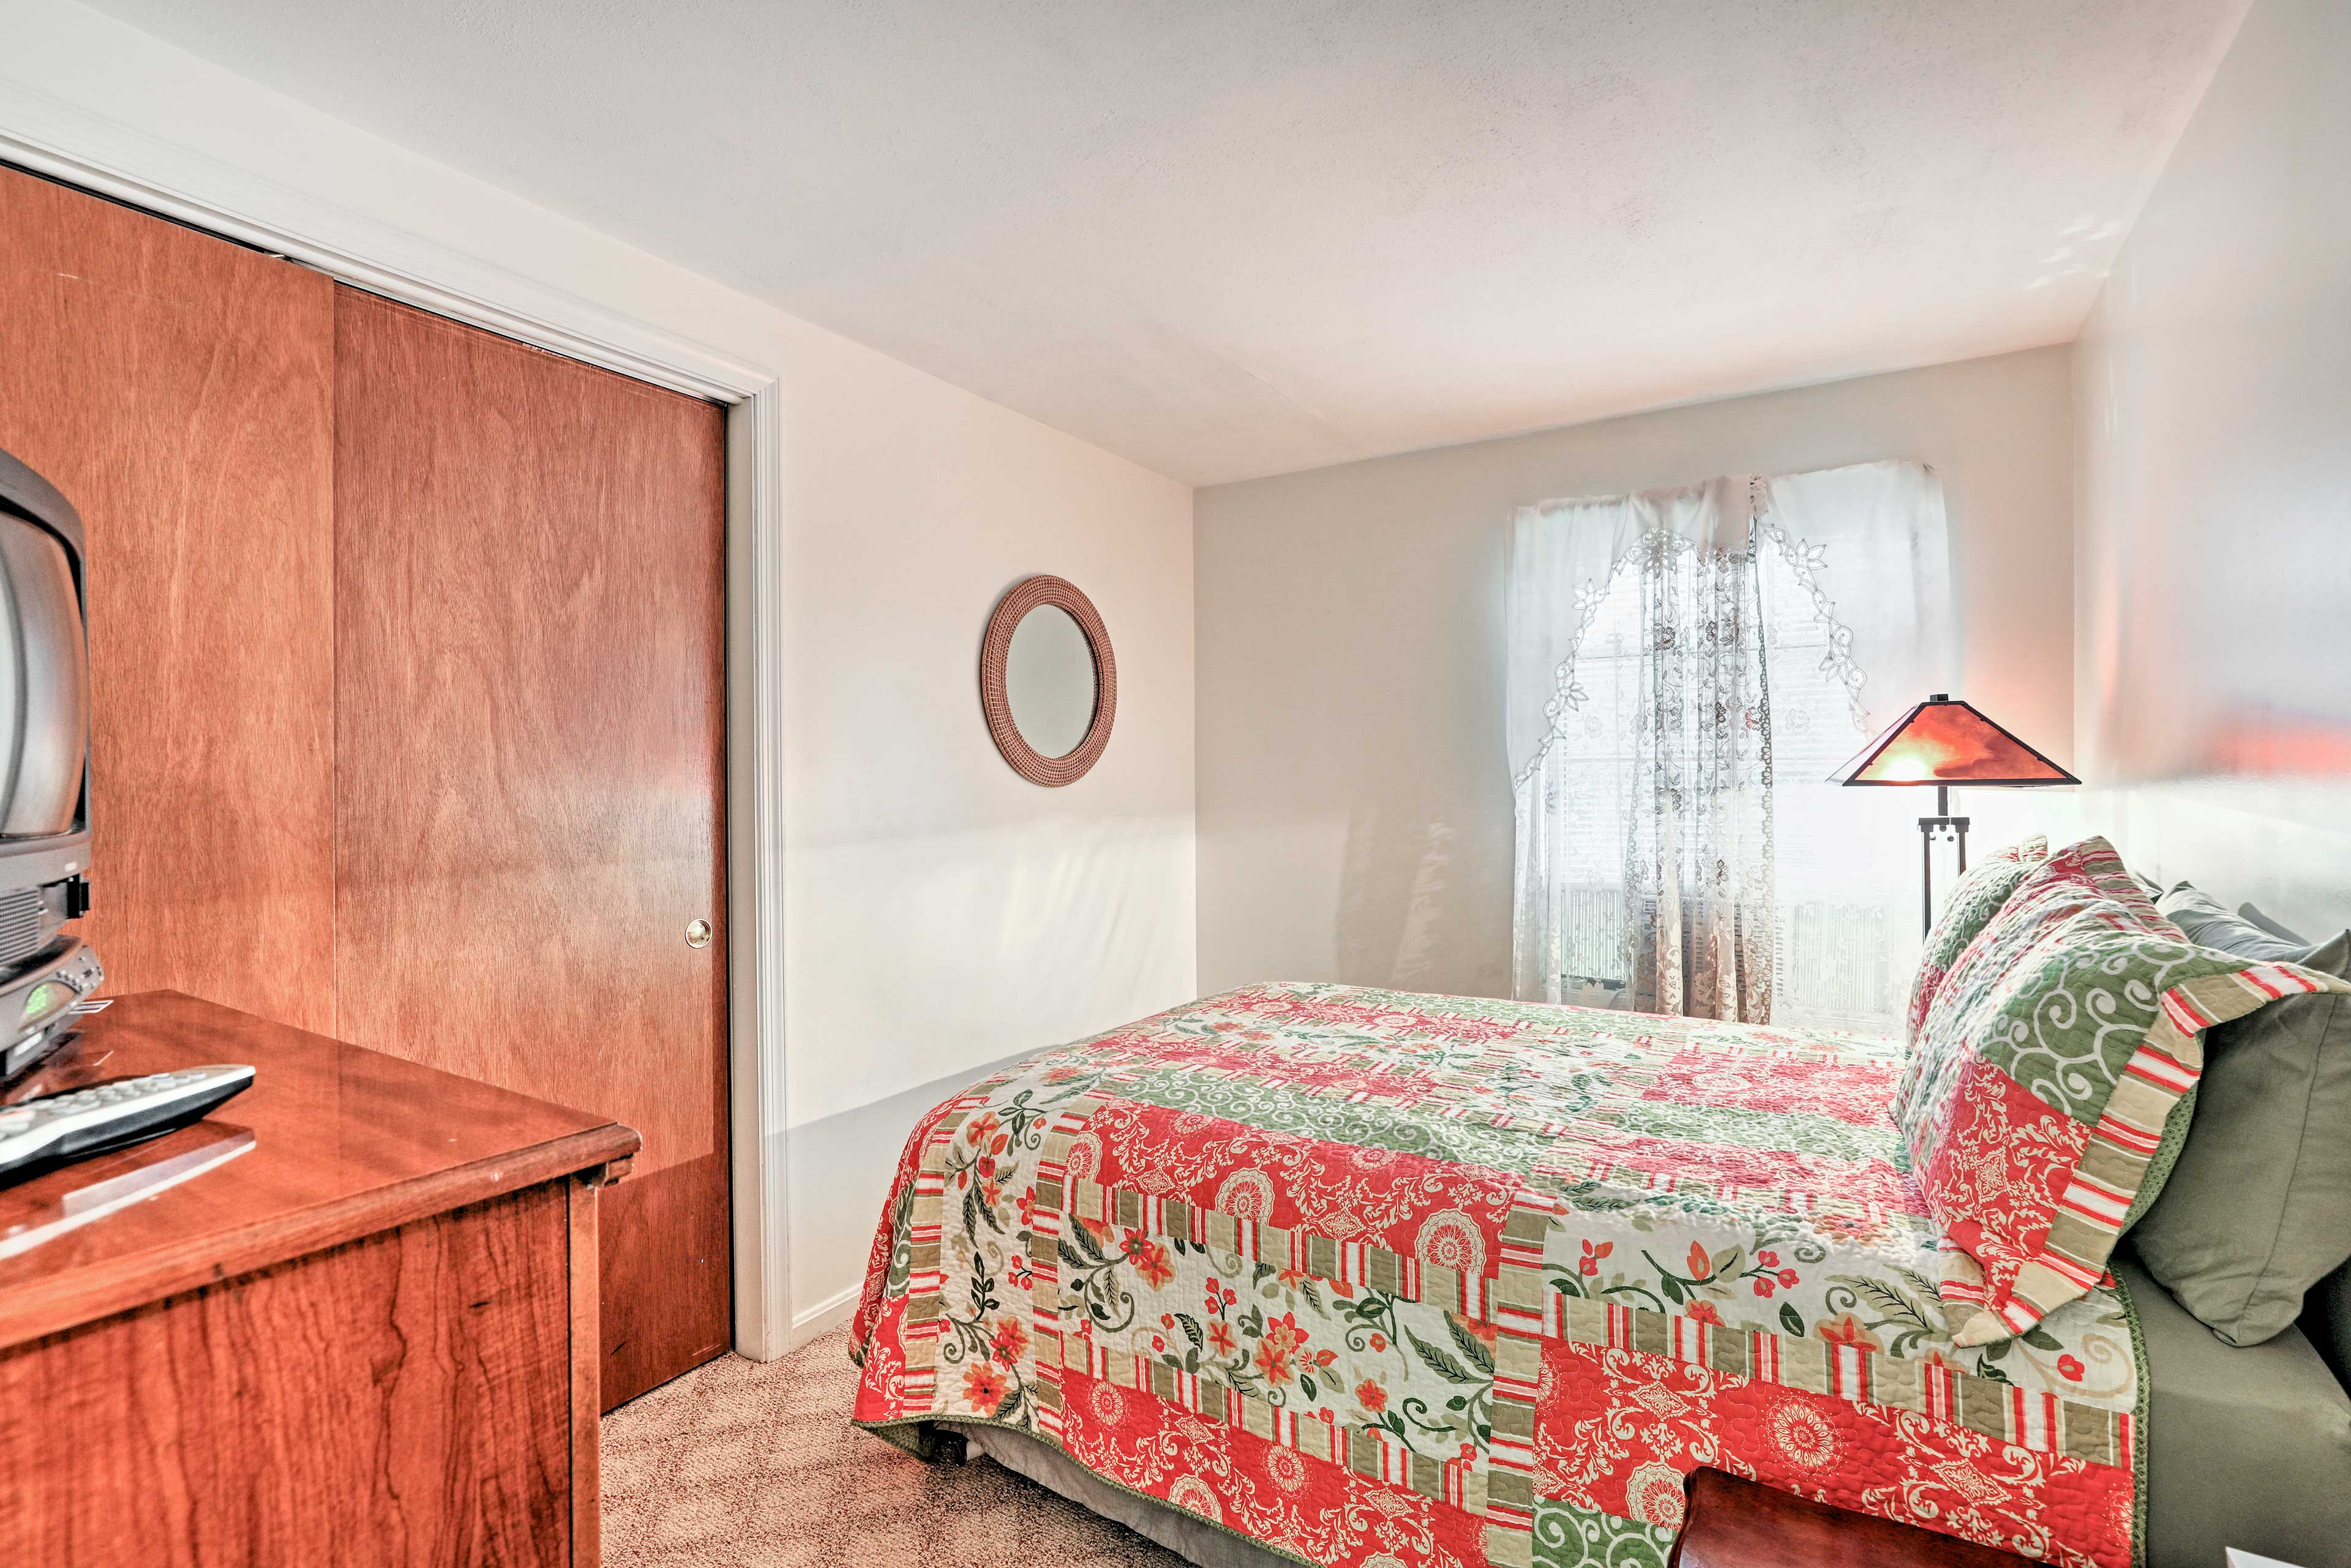 Lie back and watch a movie from the full-sized bed in the second bedroom.